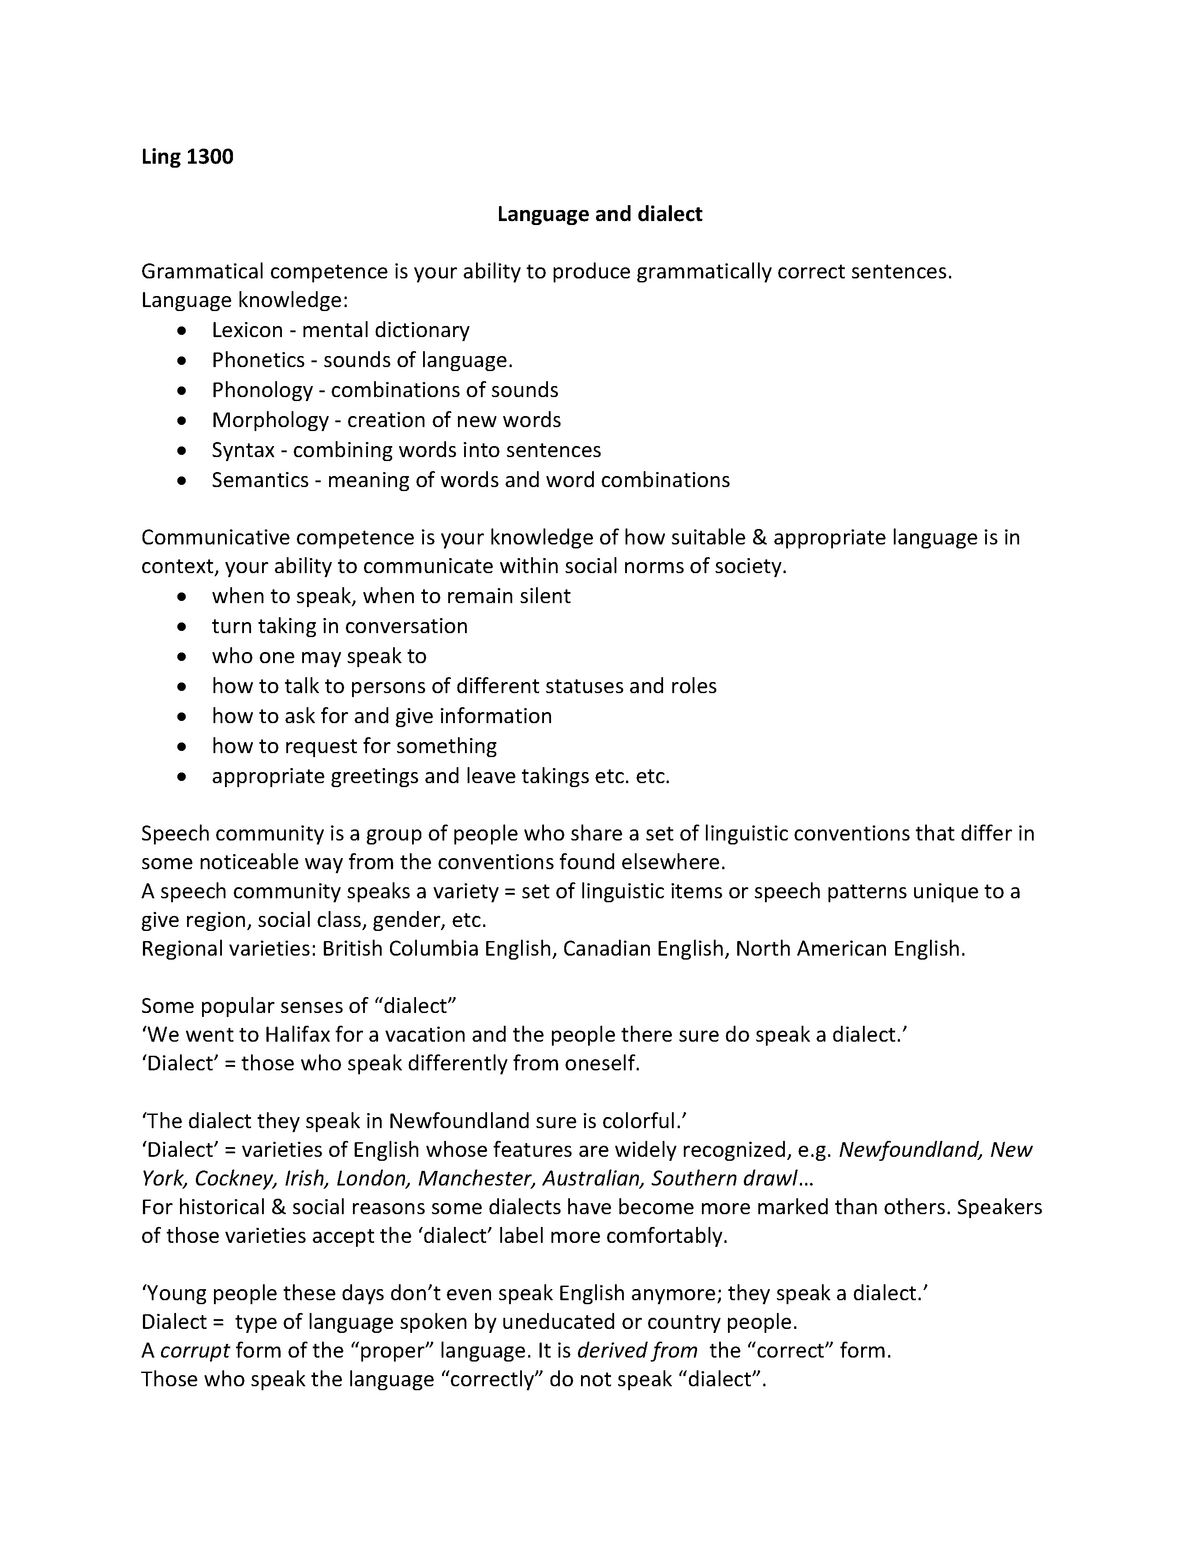 Ch 2B L&D PPT Notes - Dr  Paivi Koskinen - LING 1300